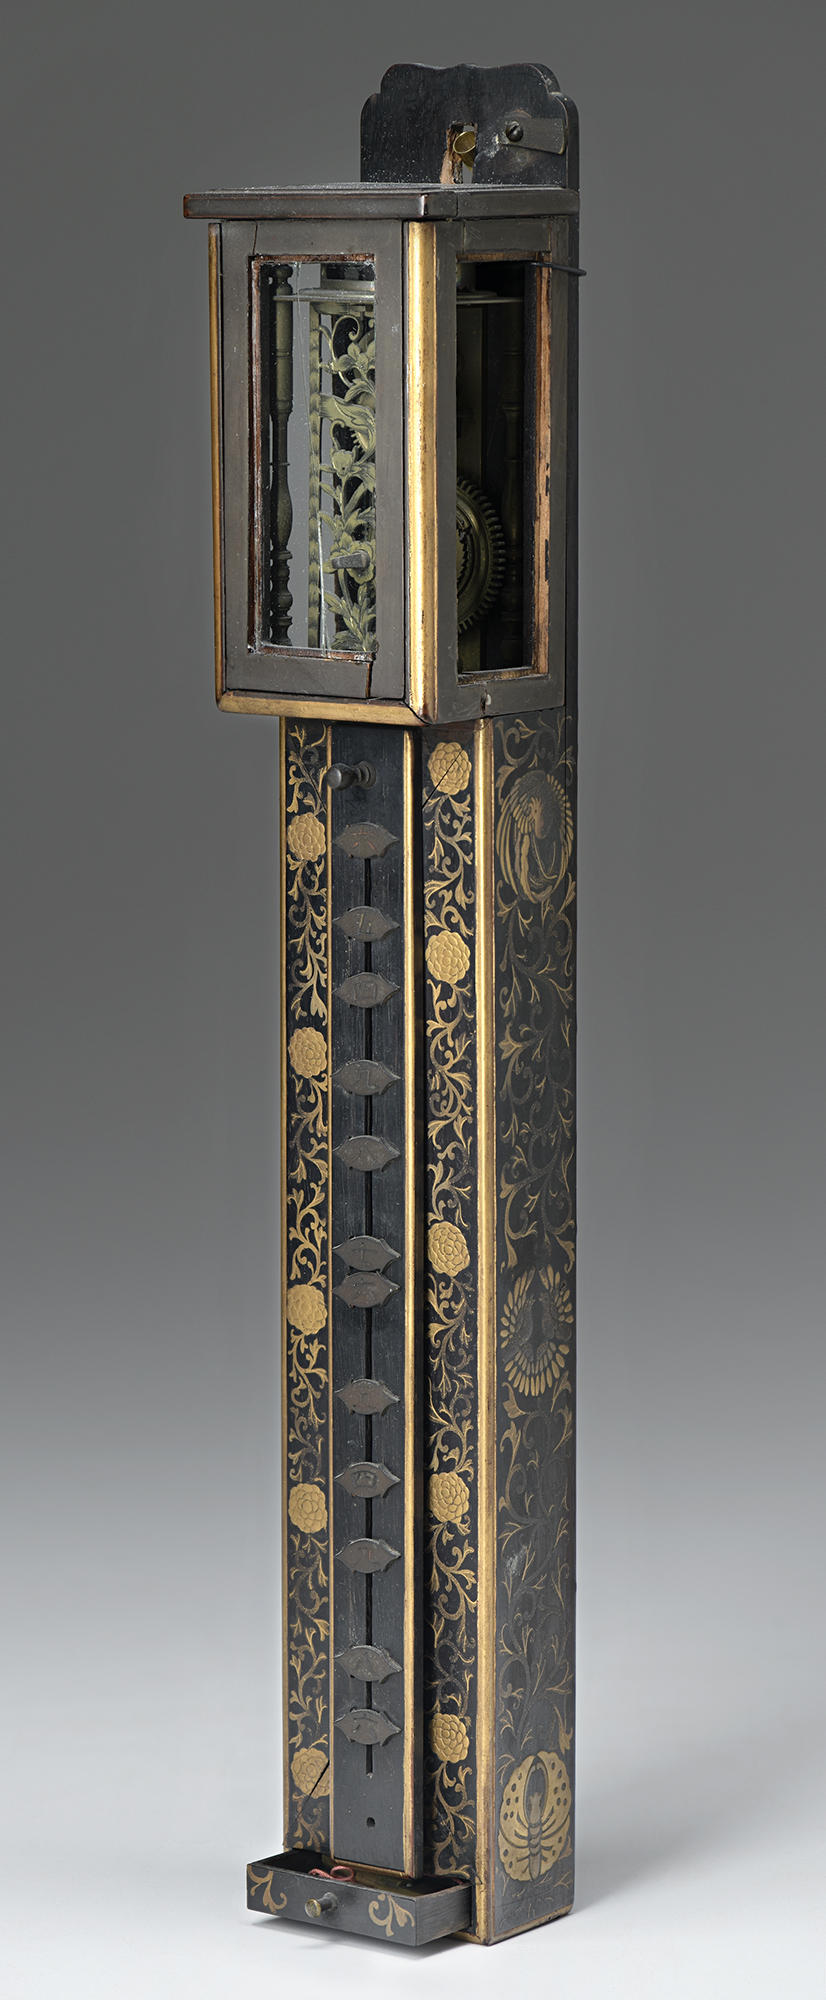 Japanese, Wall Clock, 18th century. Lacquered wood, with gold decoration and copper alloy fittings